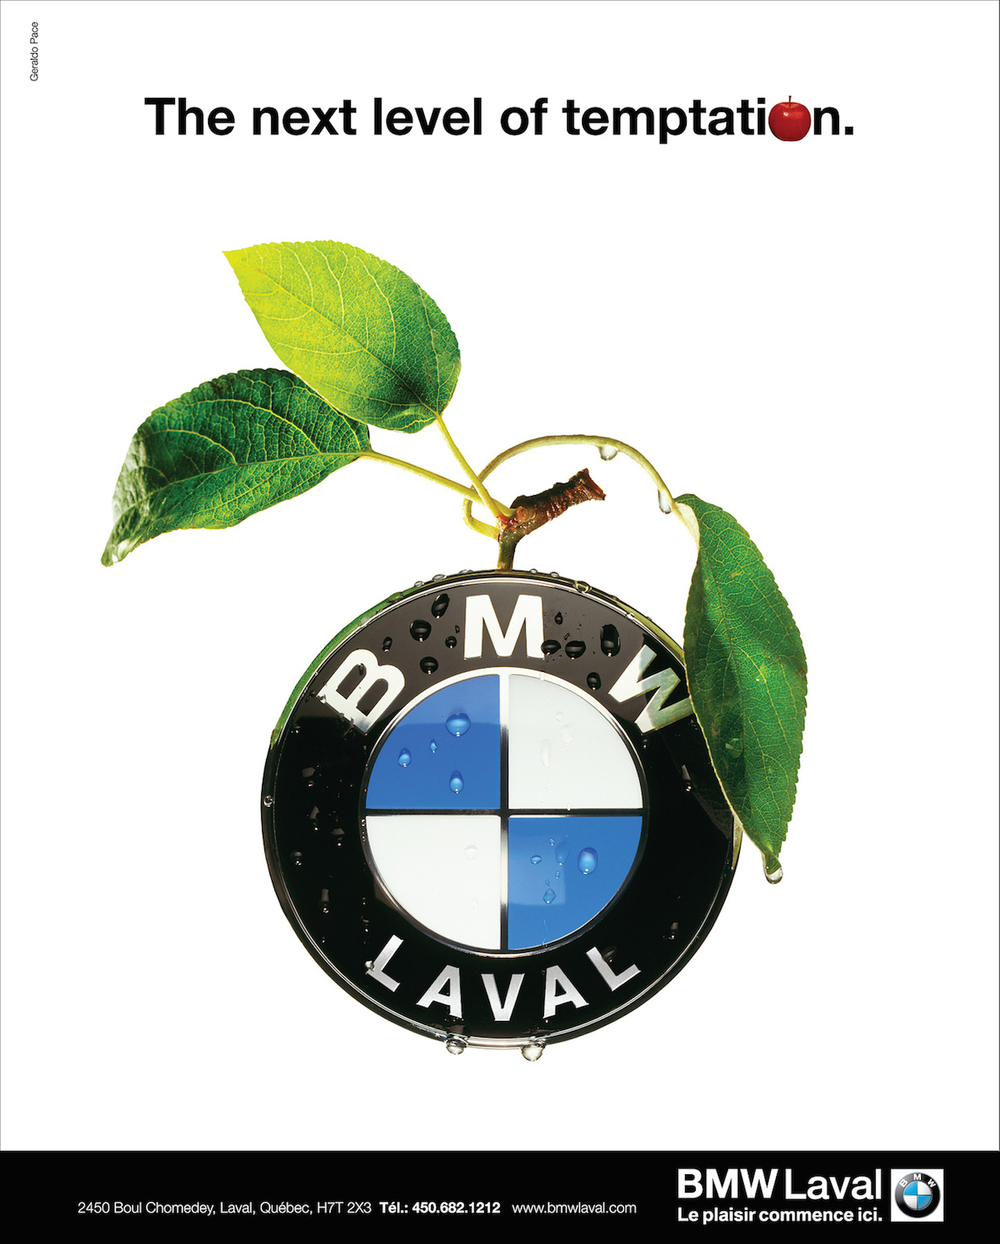 59 BMW Apple.jpg